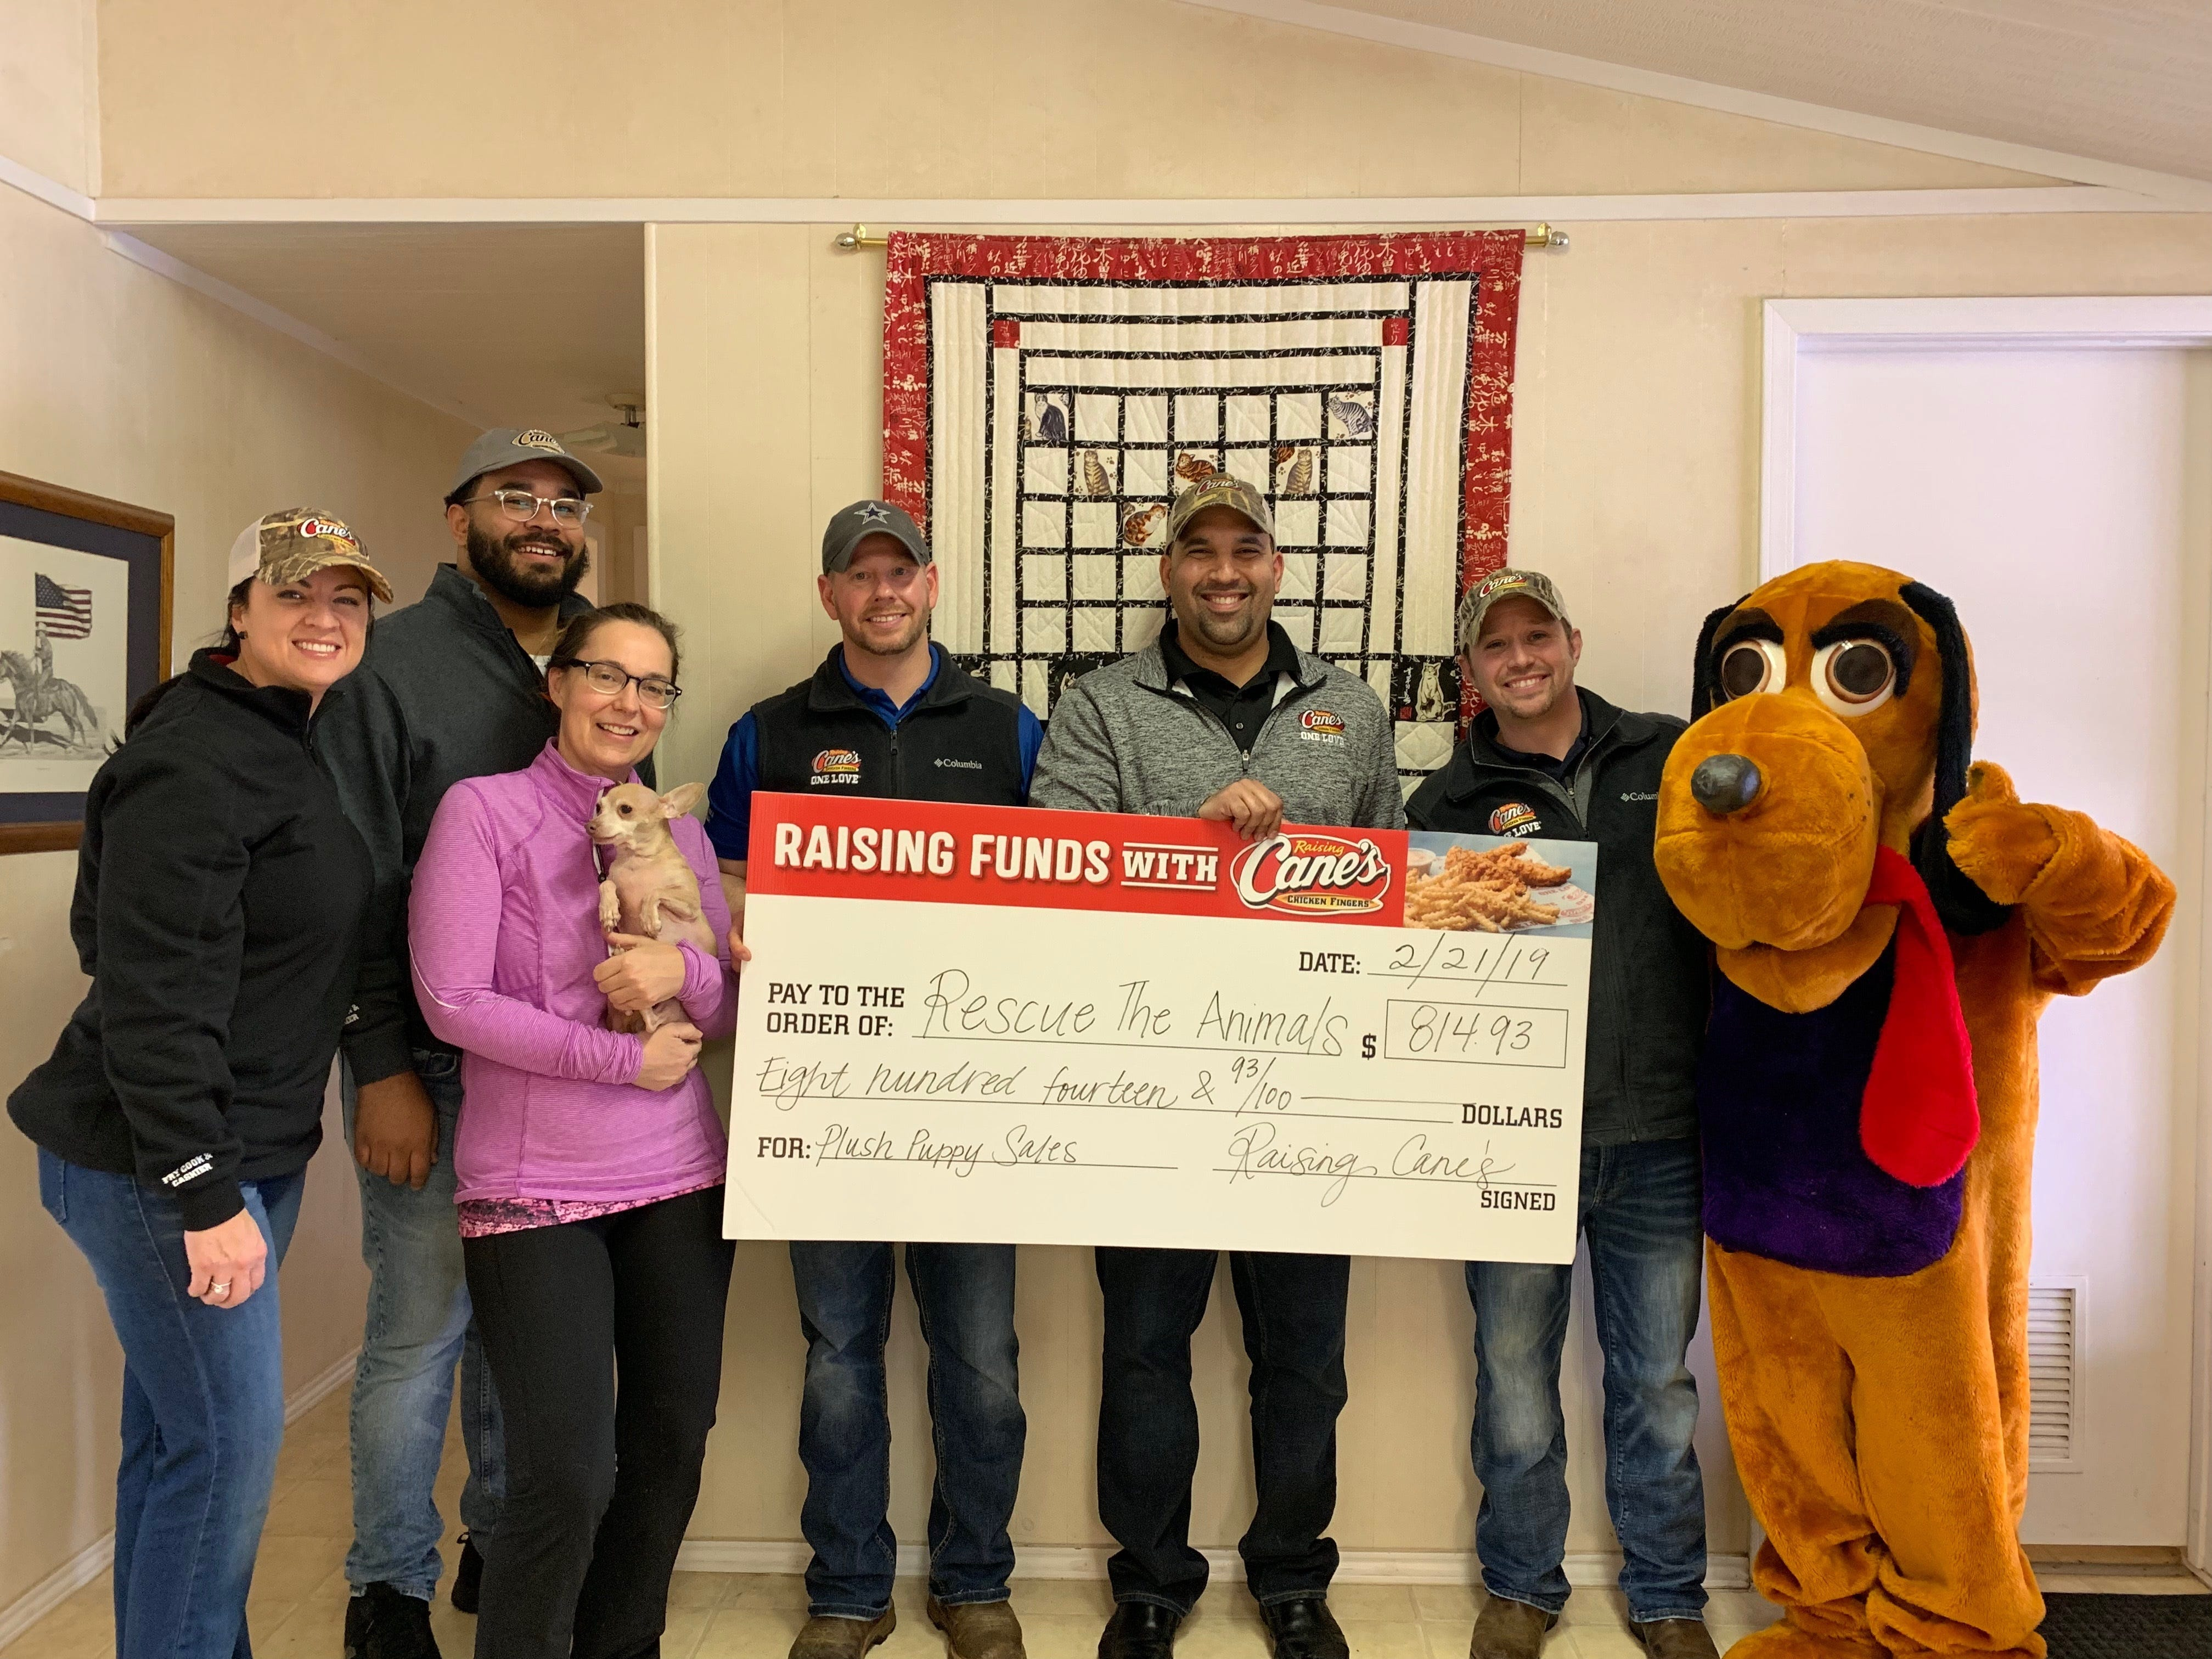 Raising Cane's recently donated $814.93 to Rescue the Animals, SPCA, as part of the restaurant chain's annual plush puppy and calendar fundraiser for pet welfare organizations. From left: Shawnon Bellah, Mike Spano, Cory Boyd, Ricky Merced, James Montgomery and Kathy Leonard.